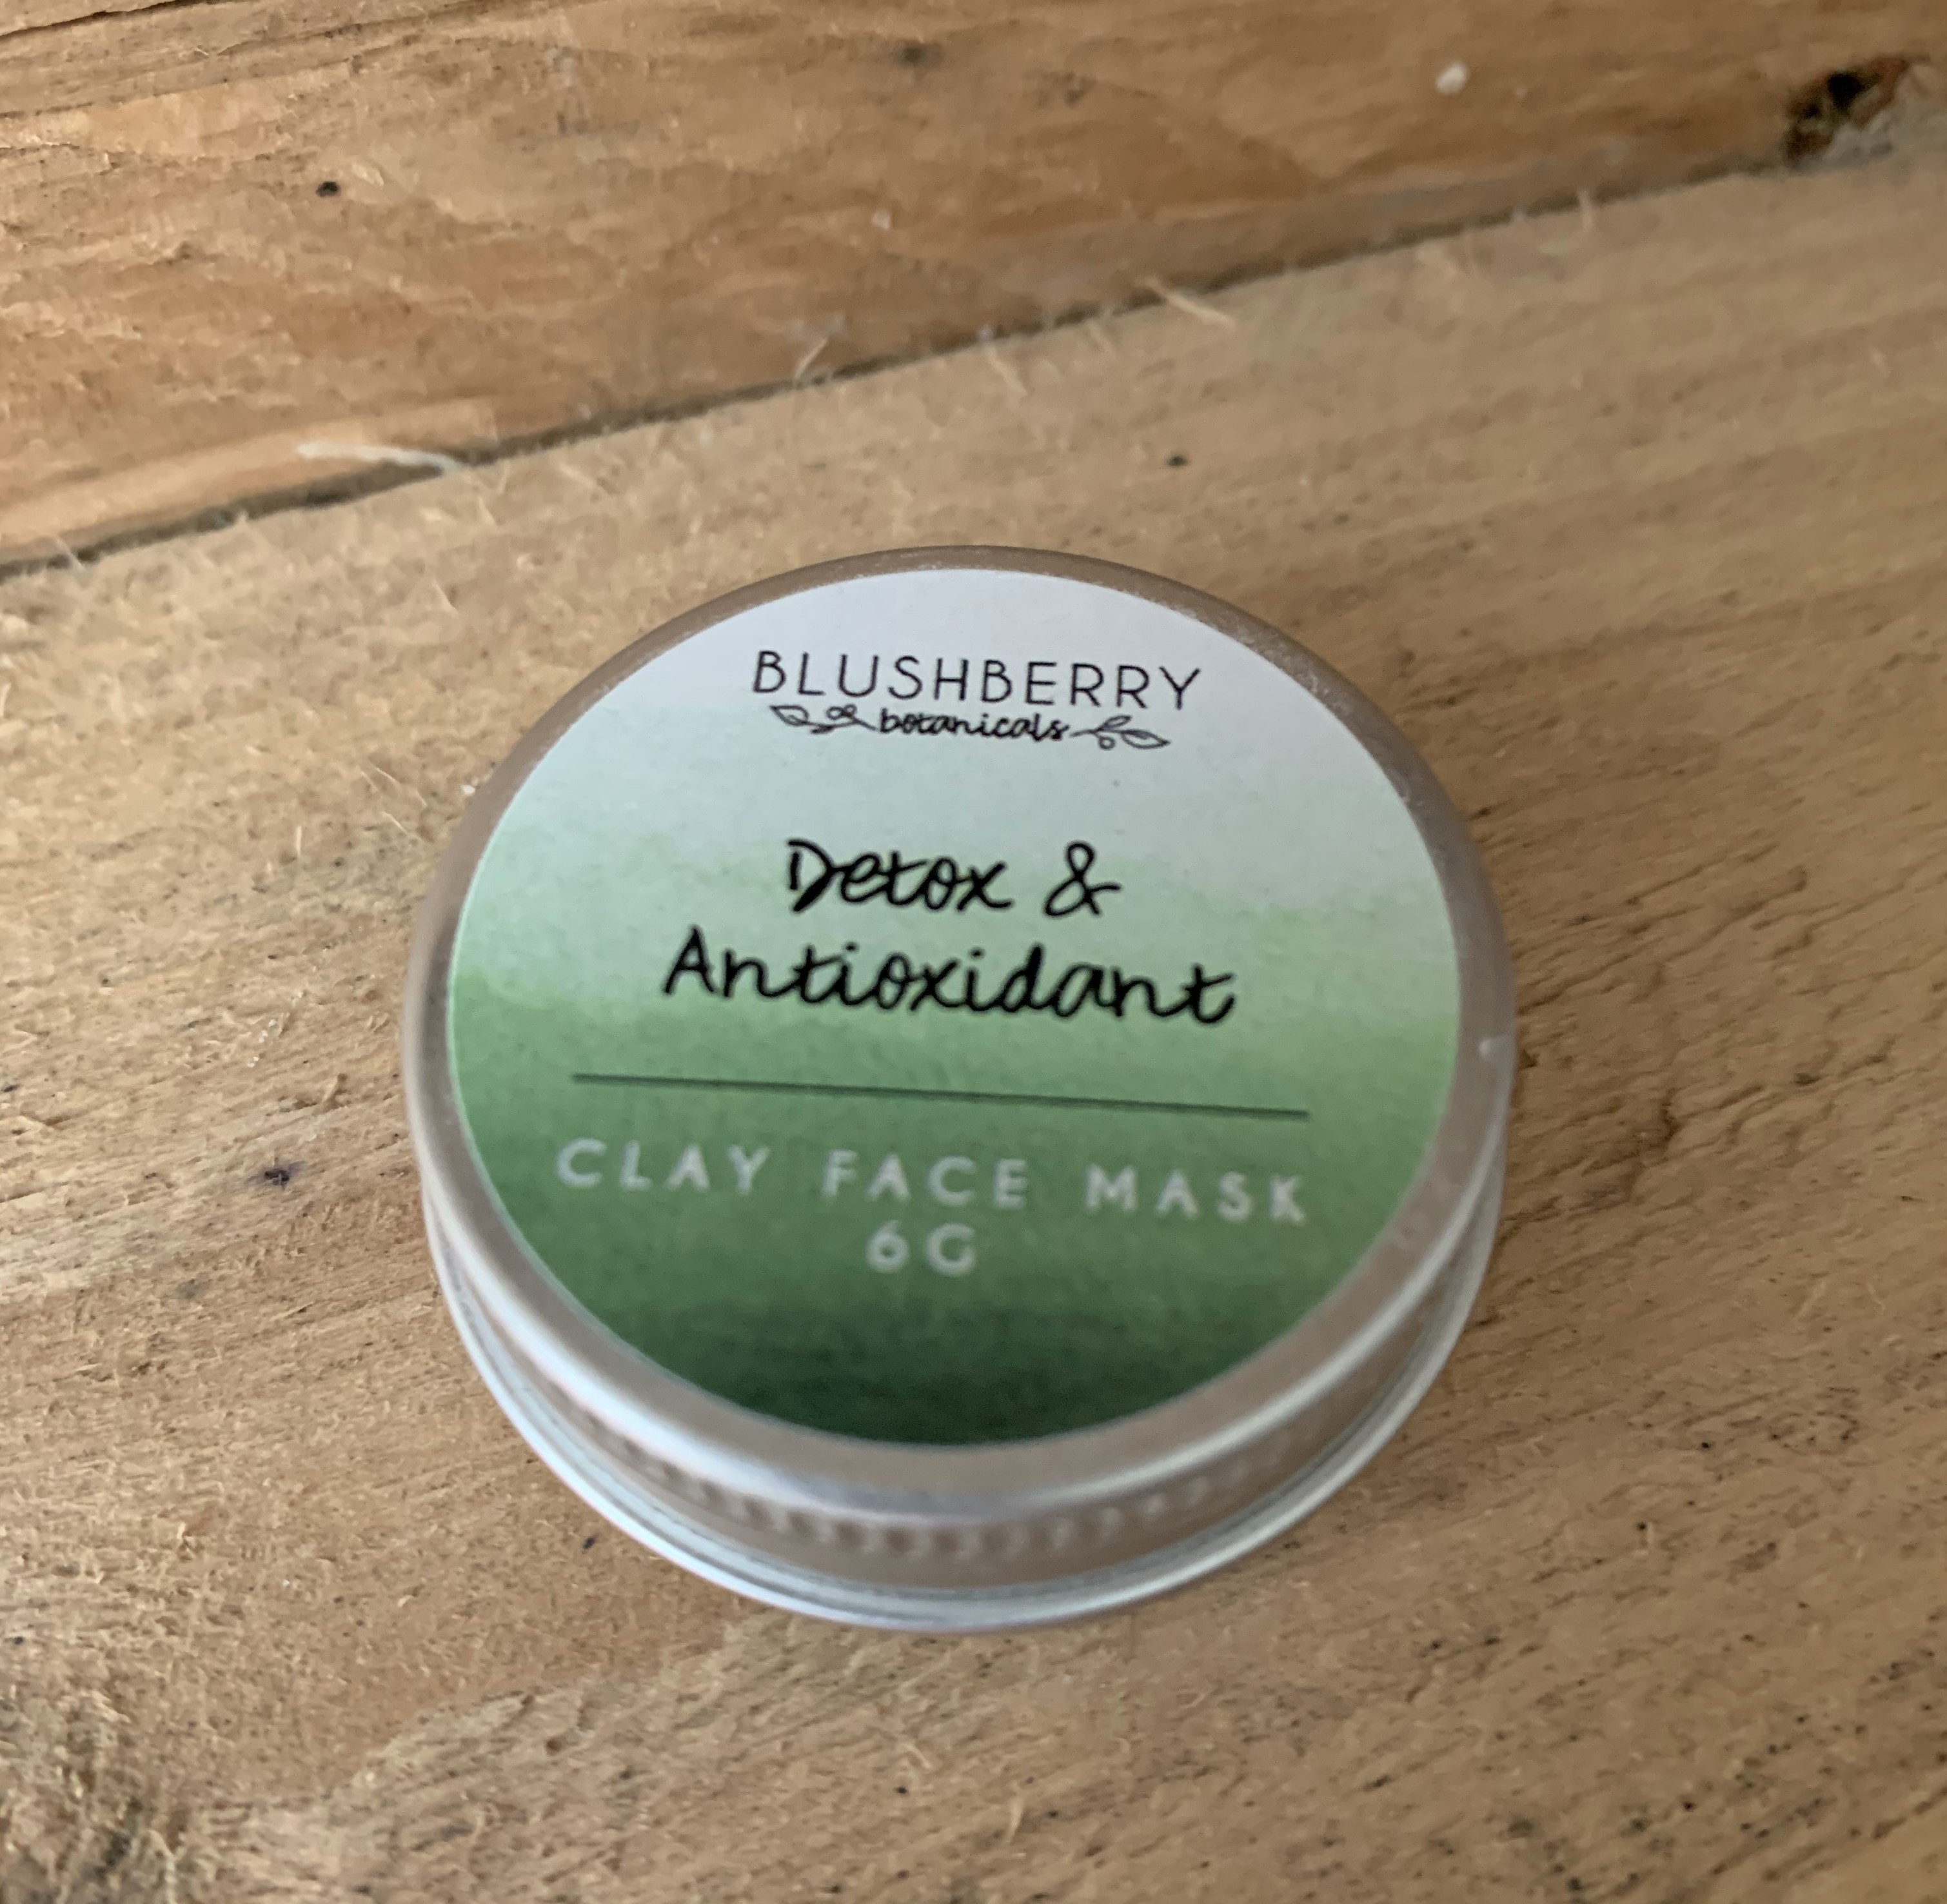 Detox and Antioxidant Face Mask by Blushberry Botanicals